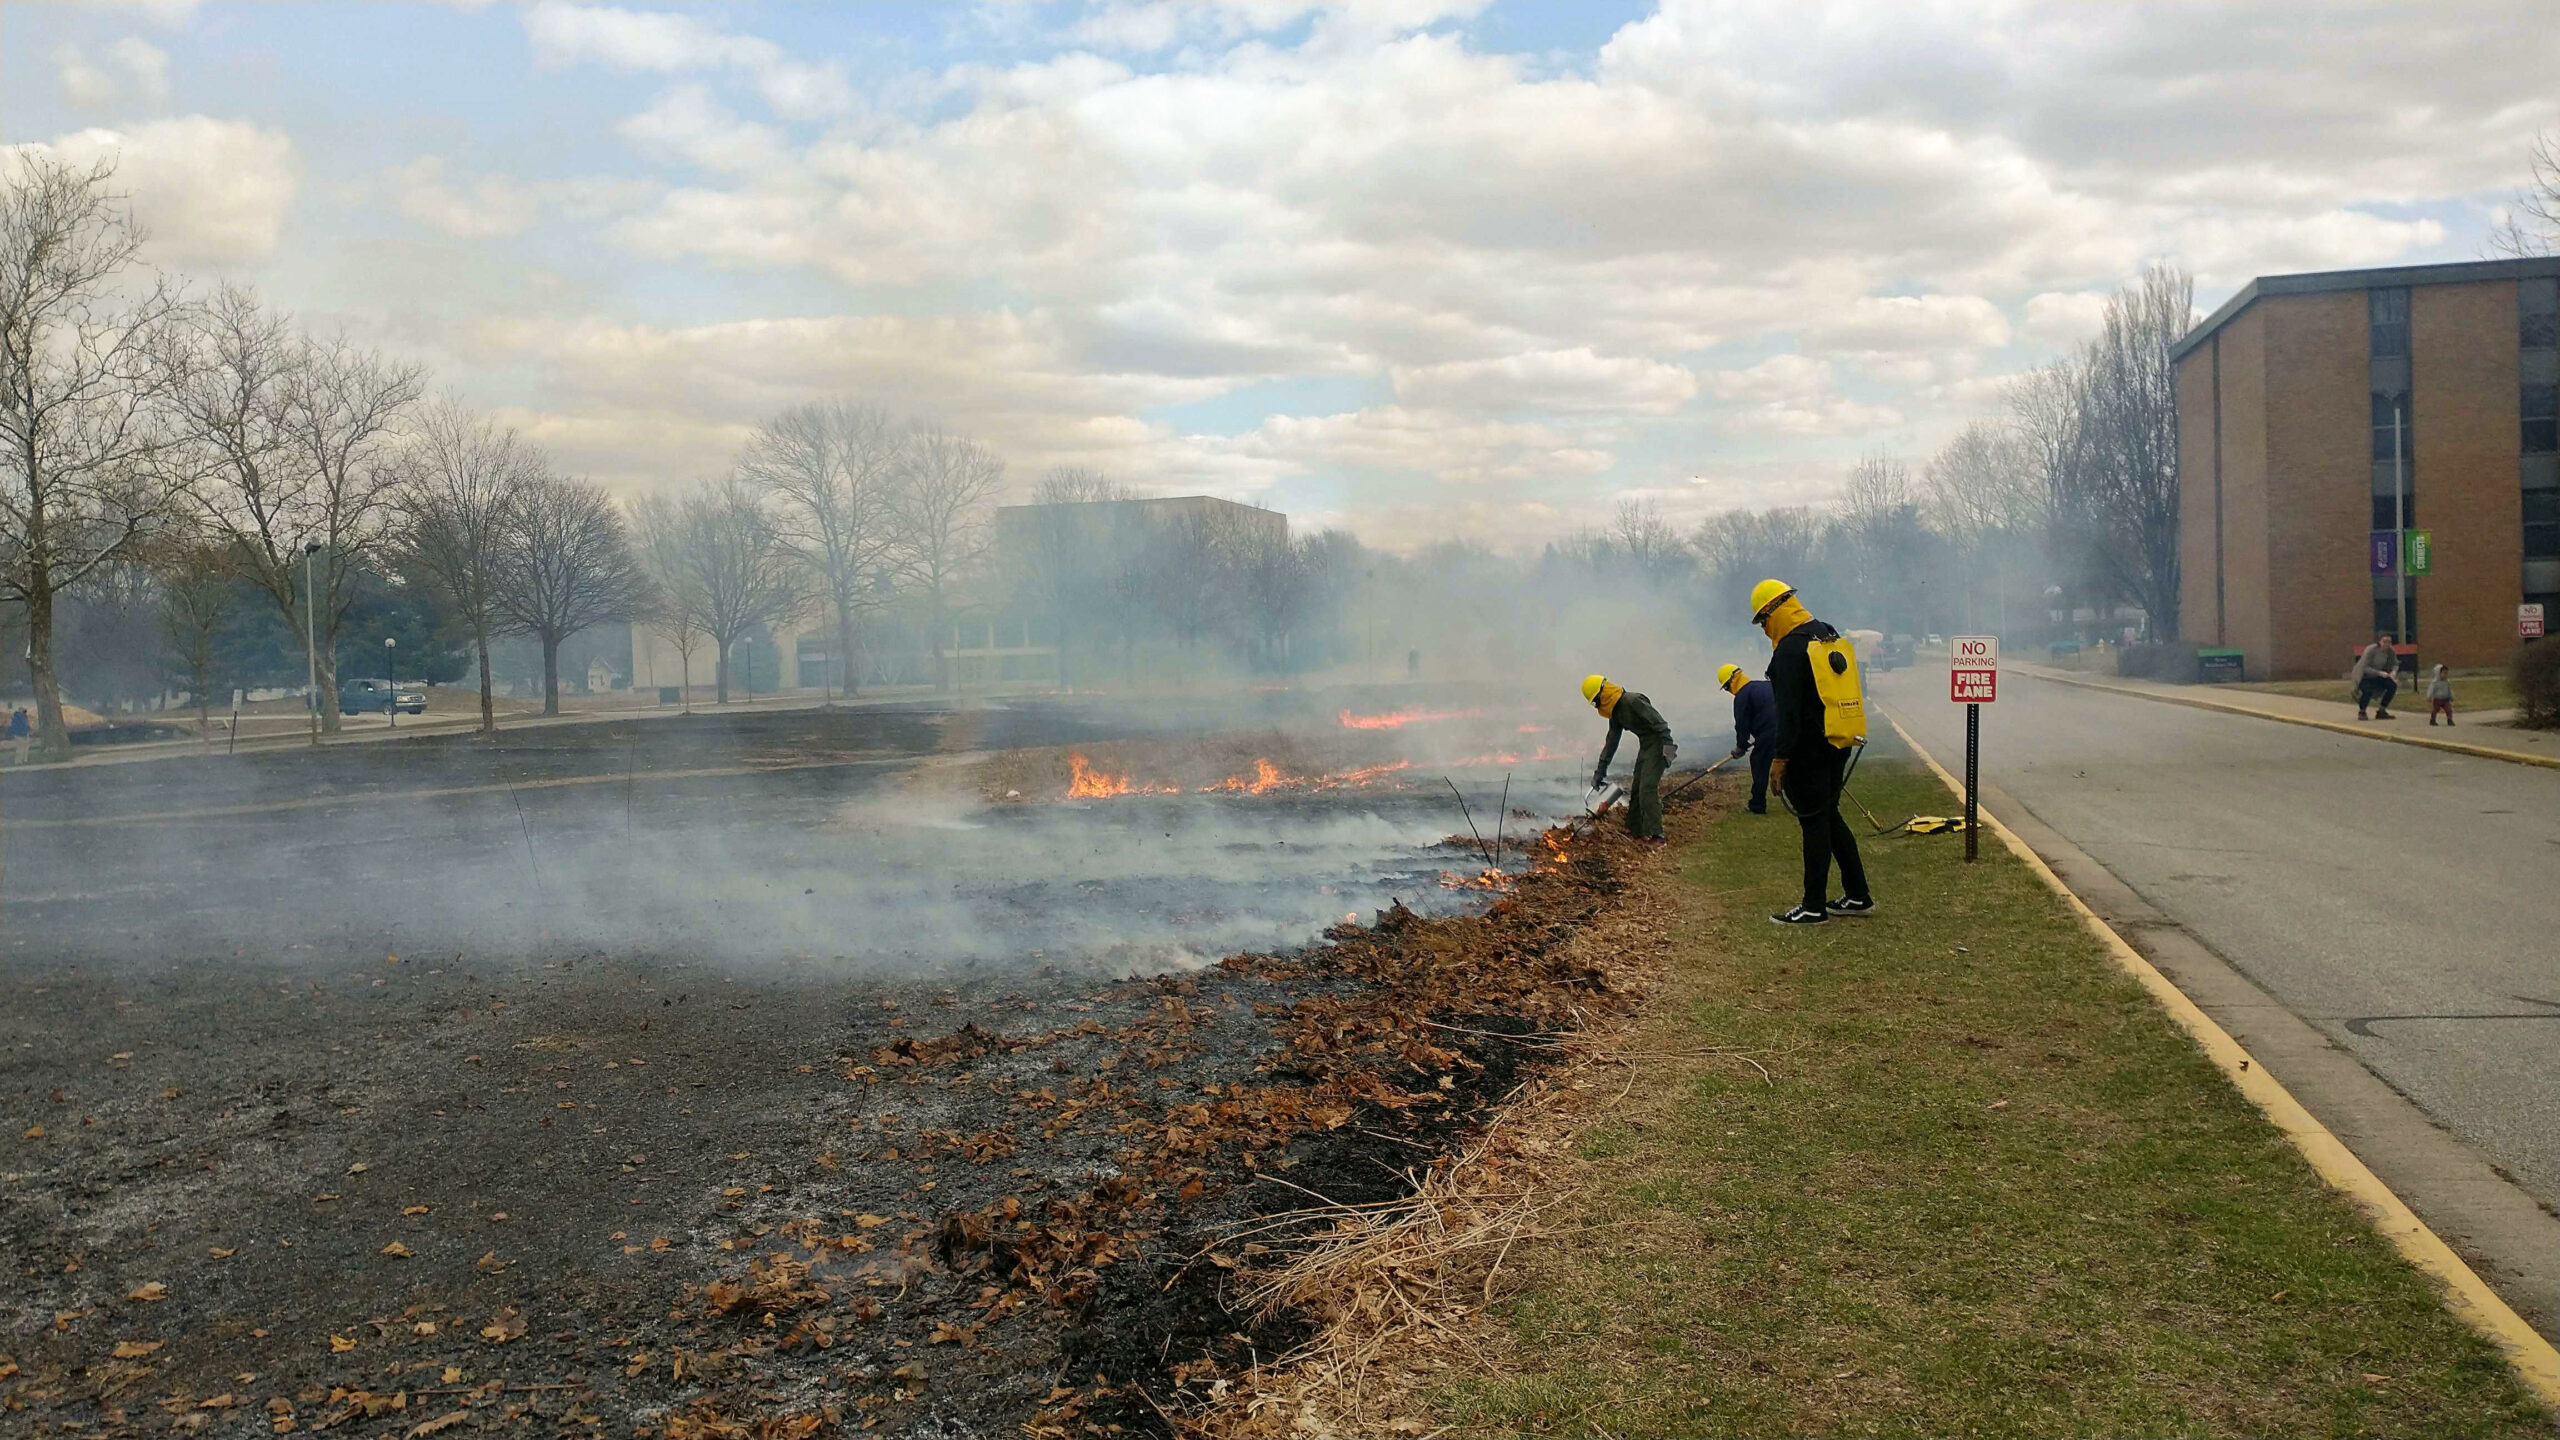 Students and staff wear protective gear as they monitor the Miller-Kratz prairie burning